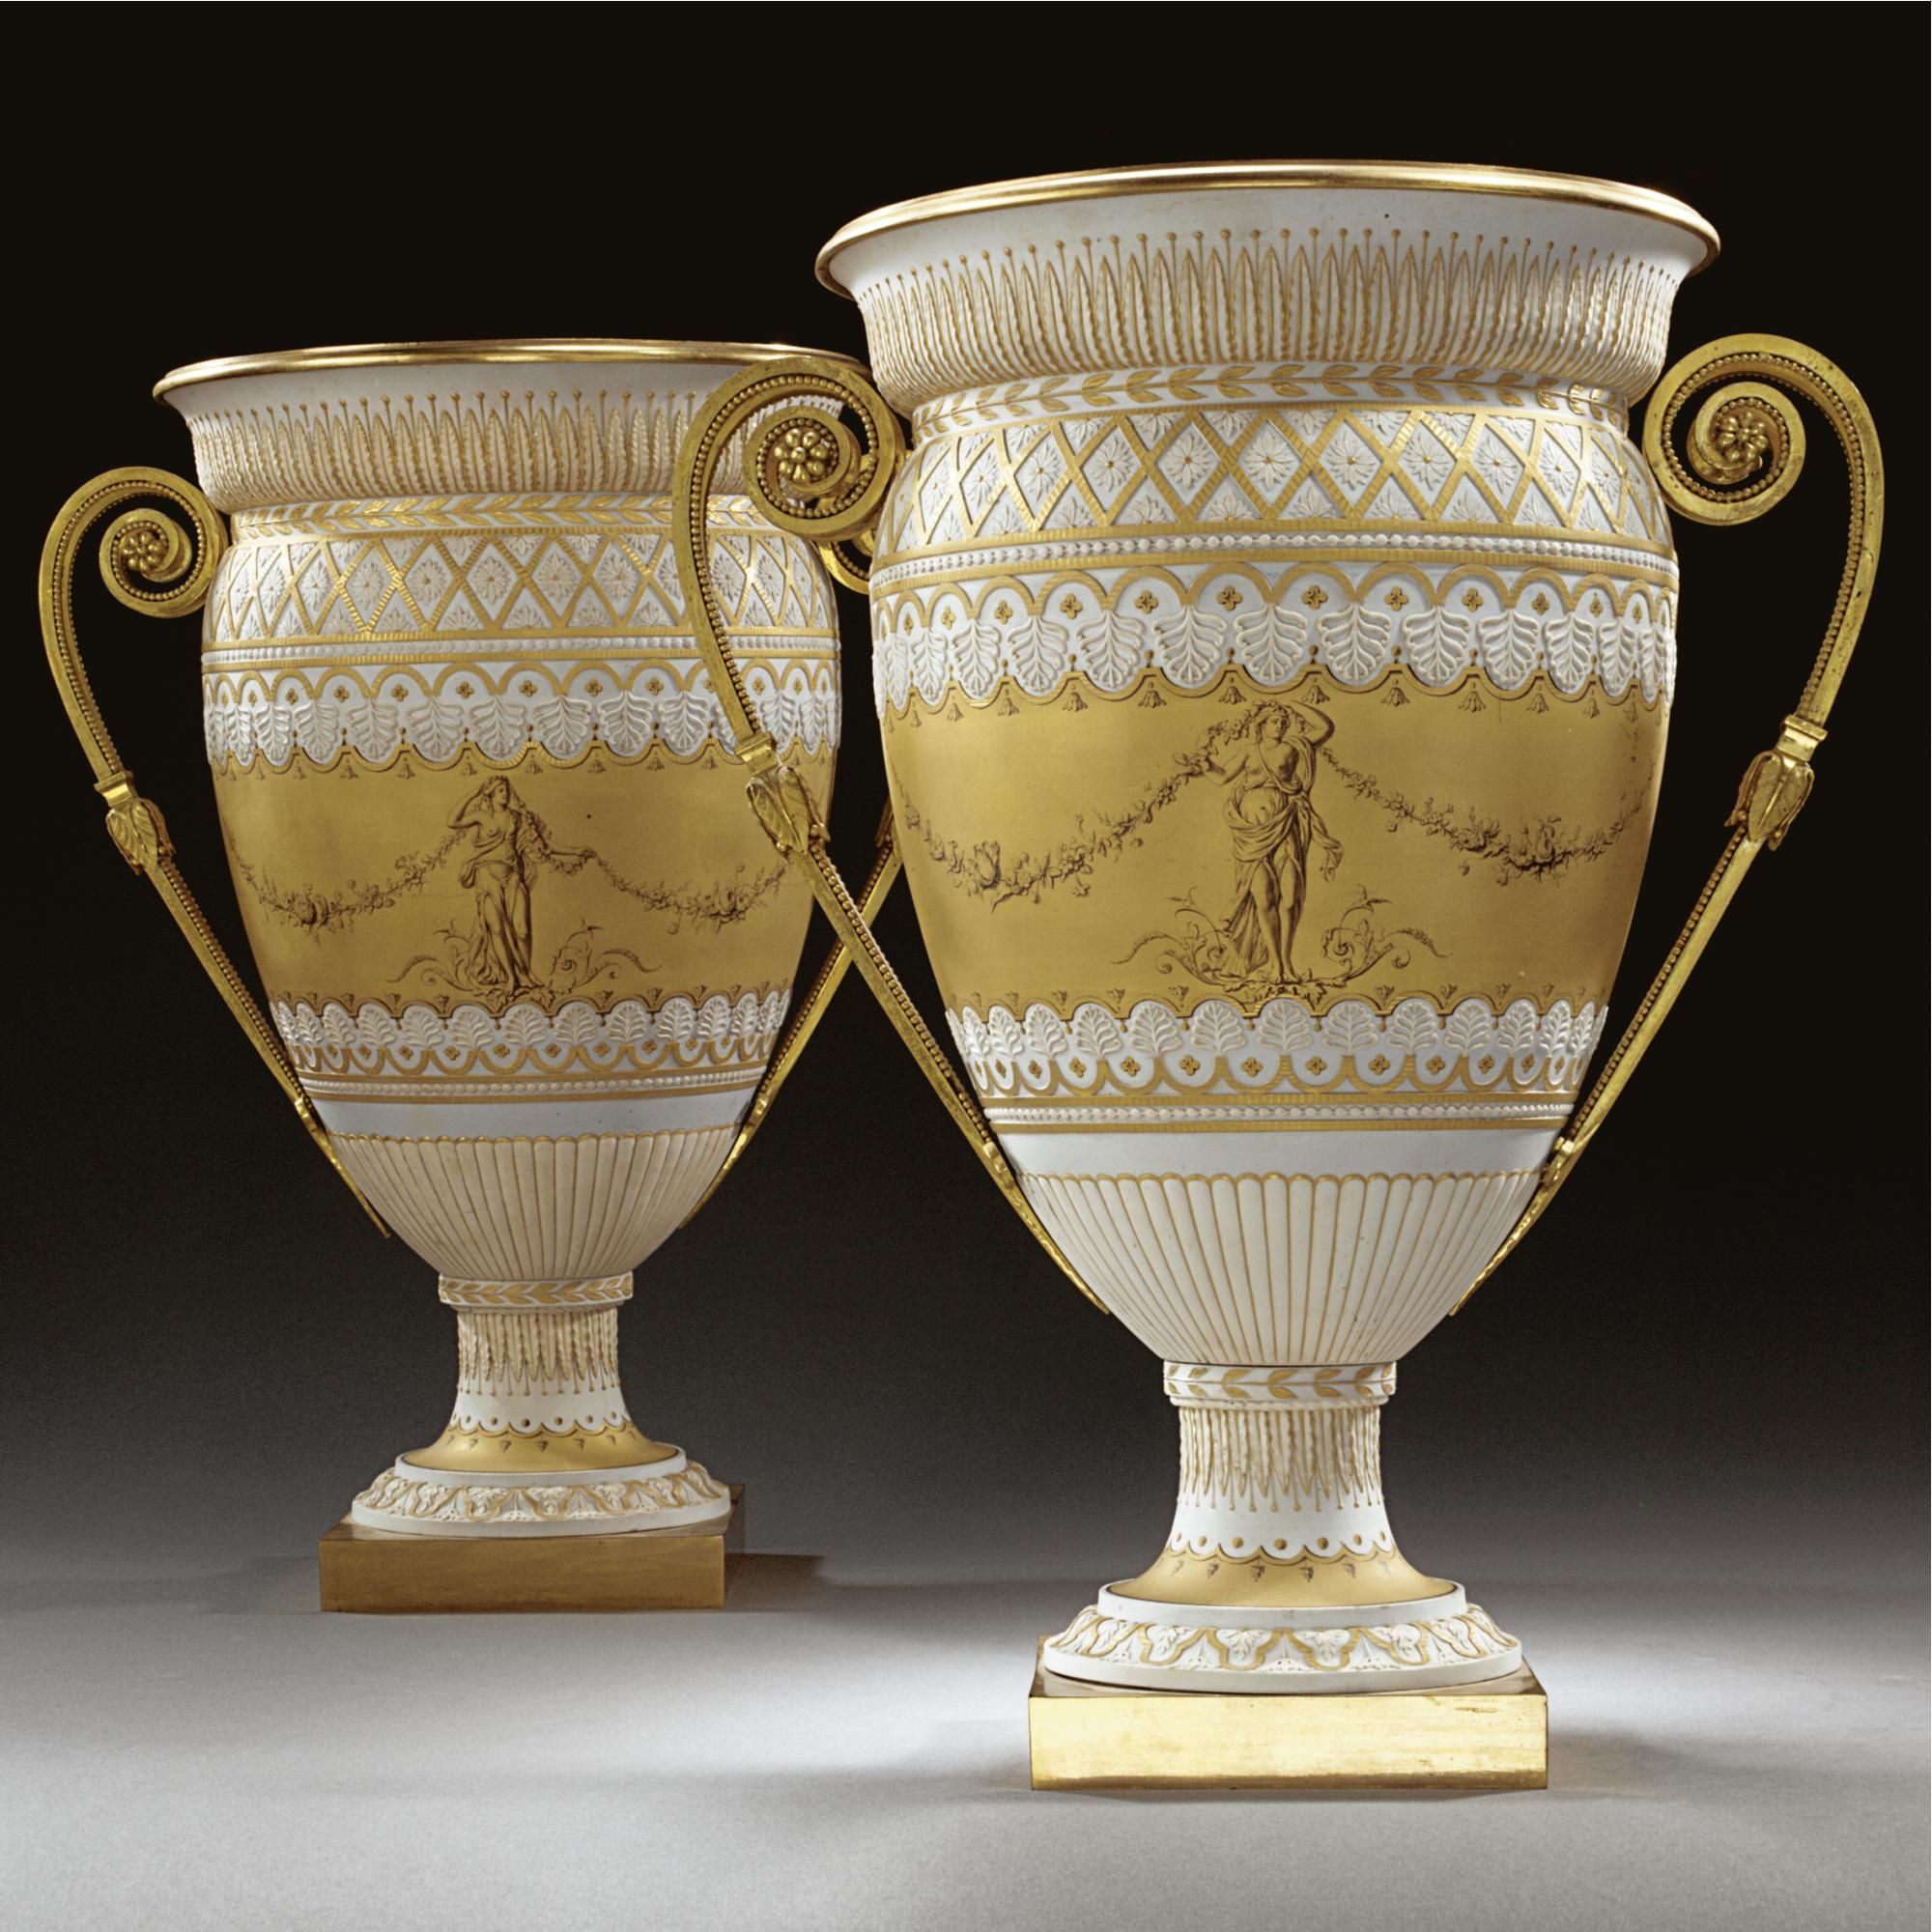 A Pair Of Sèvres Gilt-bronze-mounted Biscuit Vases (Vases